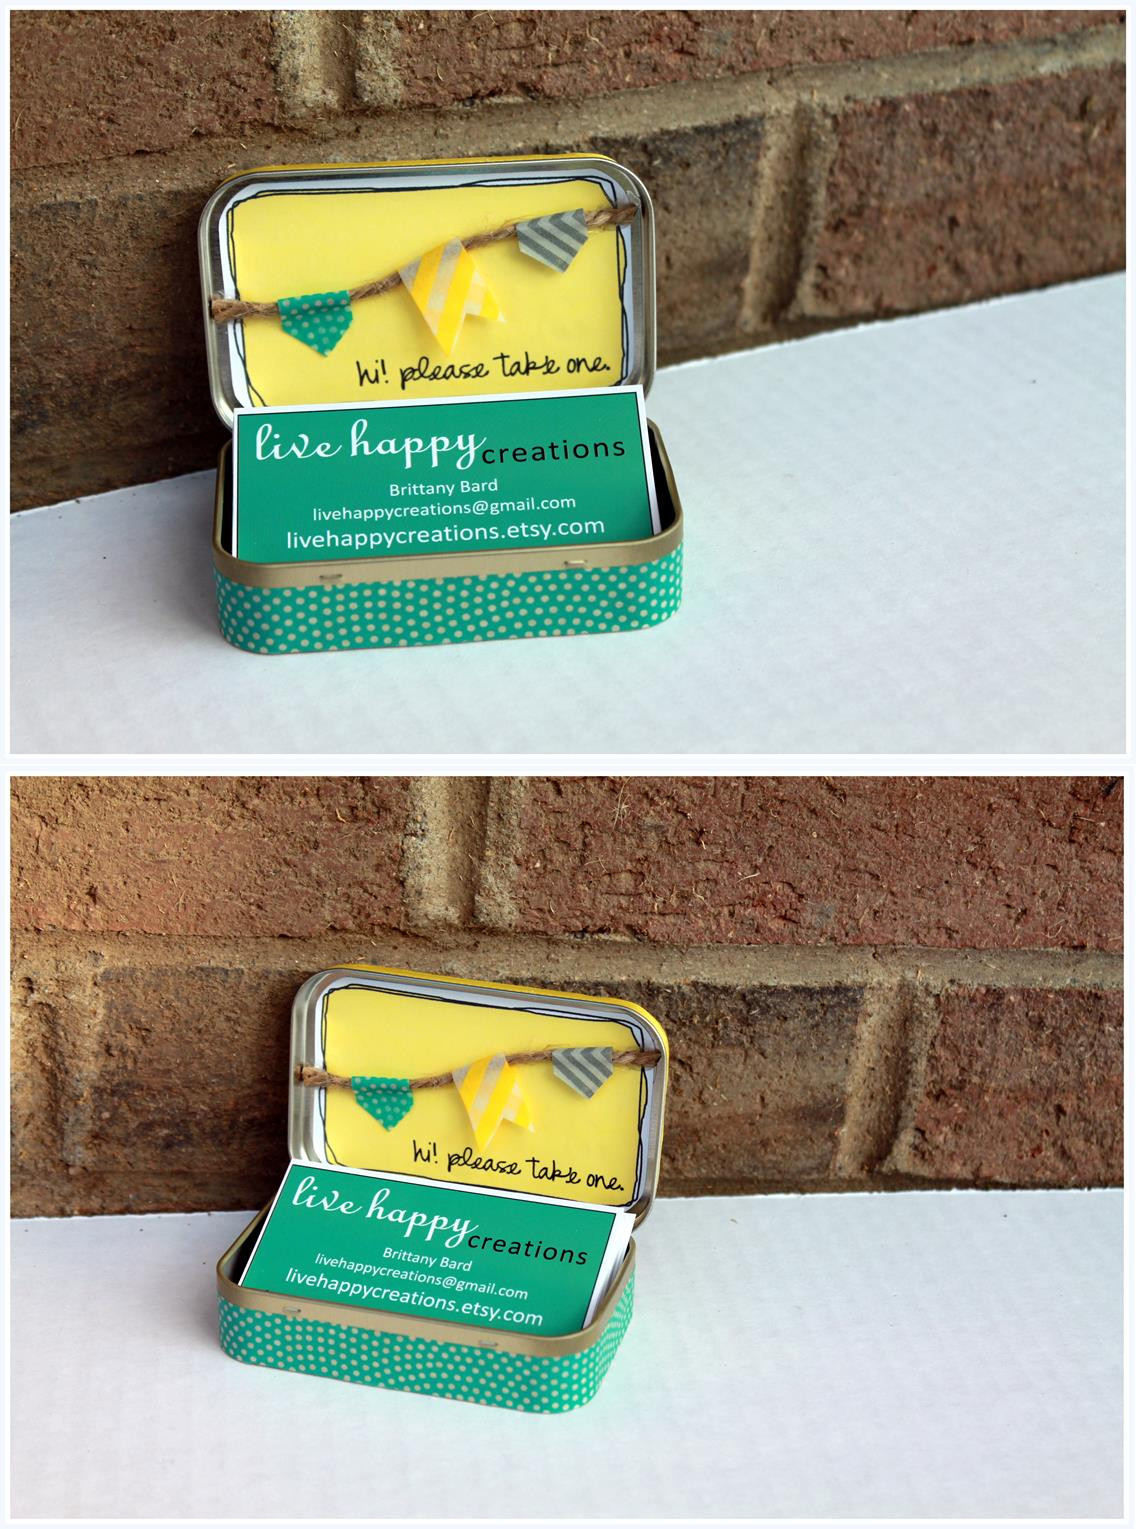 Best ideas about DIY Business Card Holders . Save or Pin diy business card holder – live happy Now.